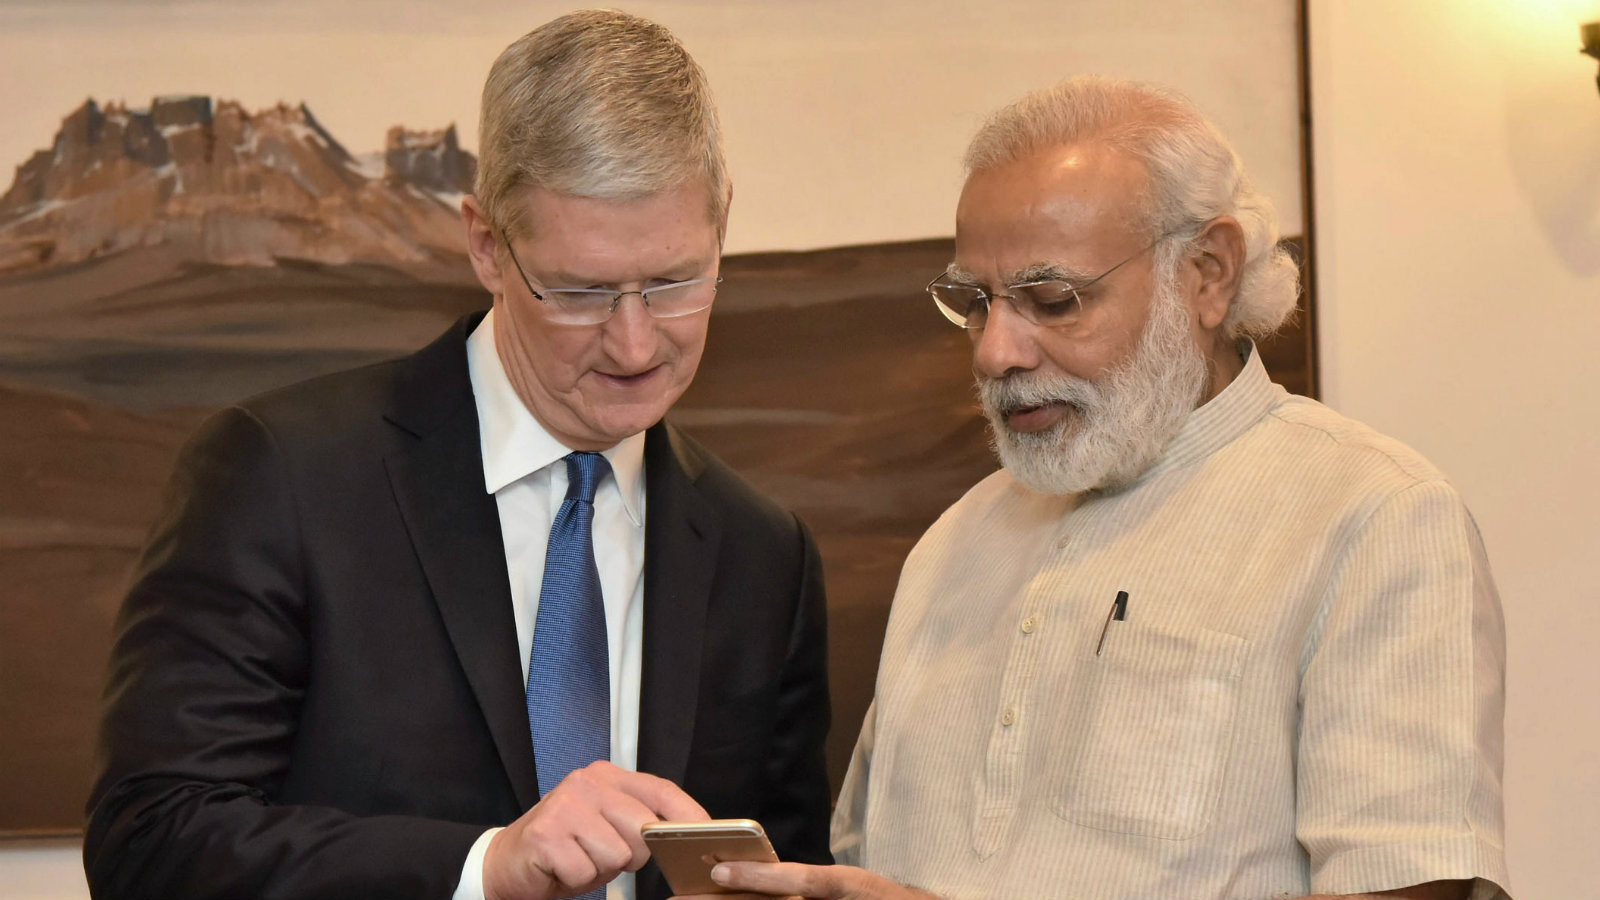 "In this photo released by the Press Information Bureau of India, Indian Prime Minister Narendra Modi, right, meets Apple CEO Tim Cook, in New Delhi, India, Saturday, May 21, 2016. Apple CEO Tim Cook laid out his company's plans for the vast Indian market in a meeting Saturday with Prime Minister Narendra Modi, who in turn sought Apple's support for his ""Digital India"" initiative focusing on e-education, health and increasing farmers' incomes."